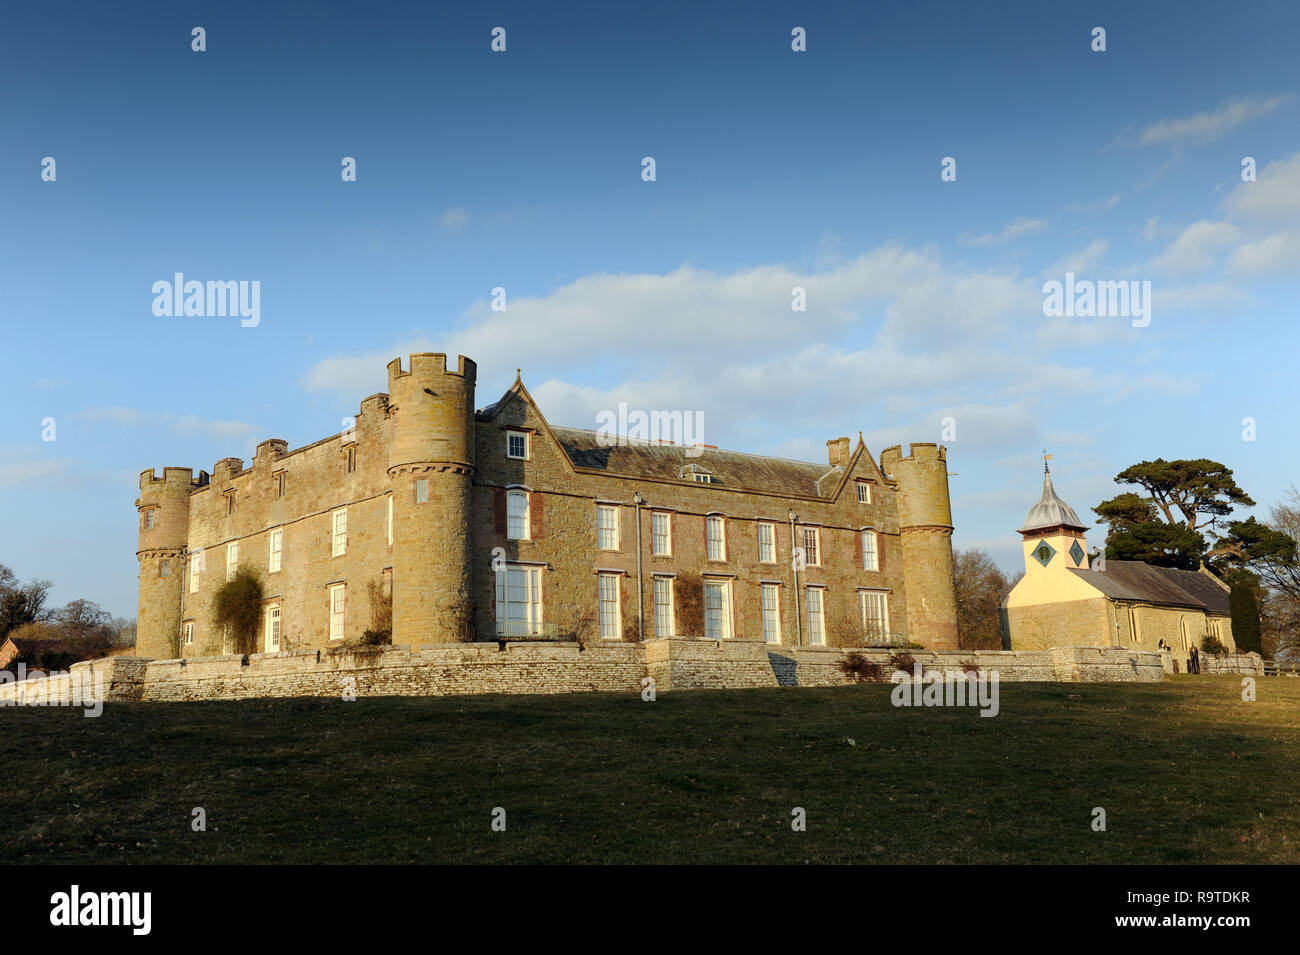 Croft Castle in Herefordshire England Uk photographed from footpath - Stock Image